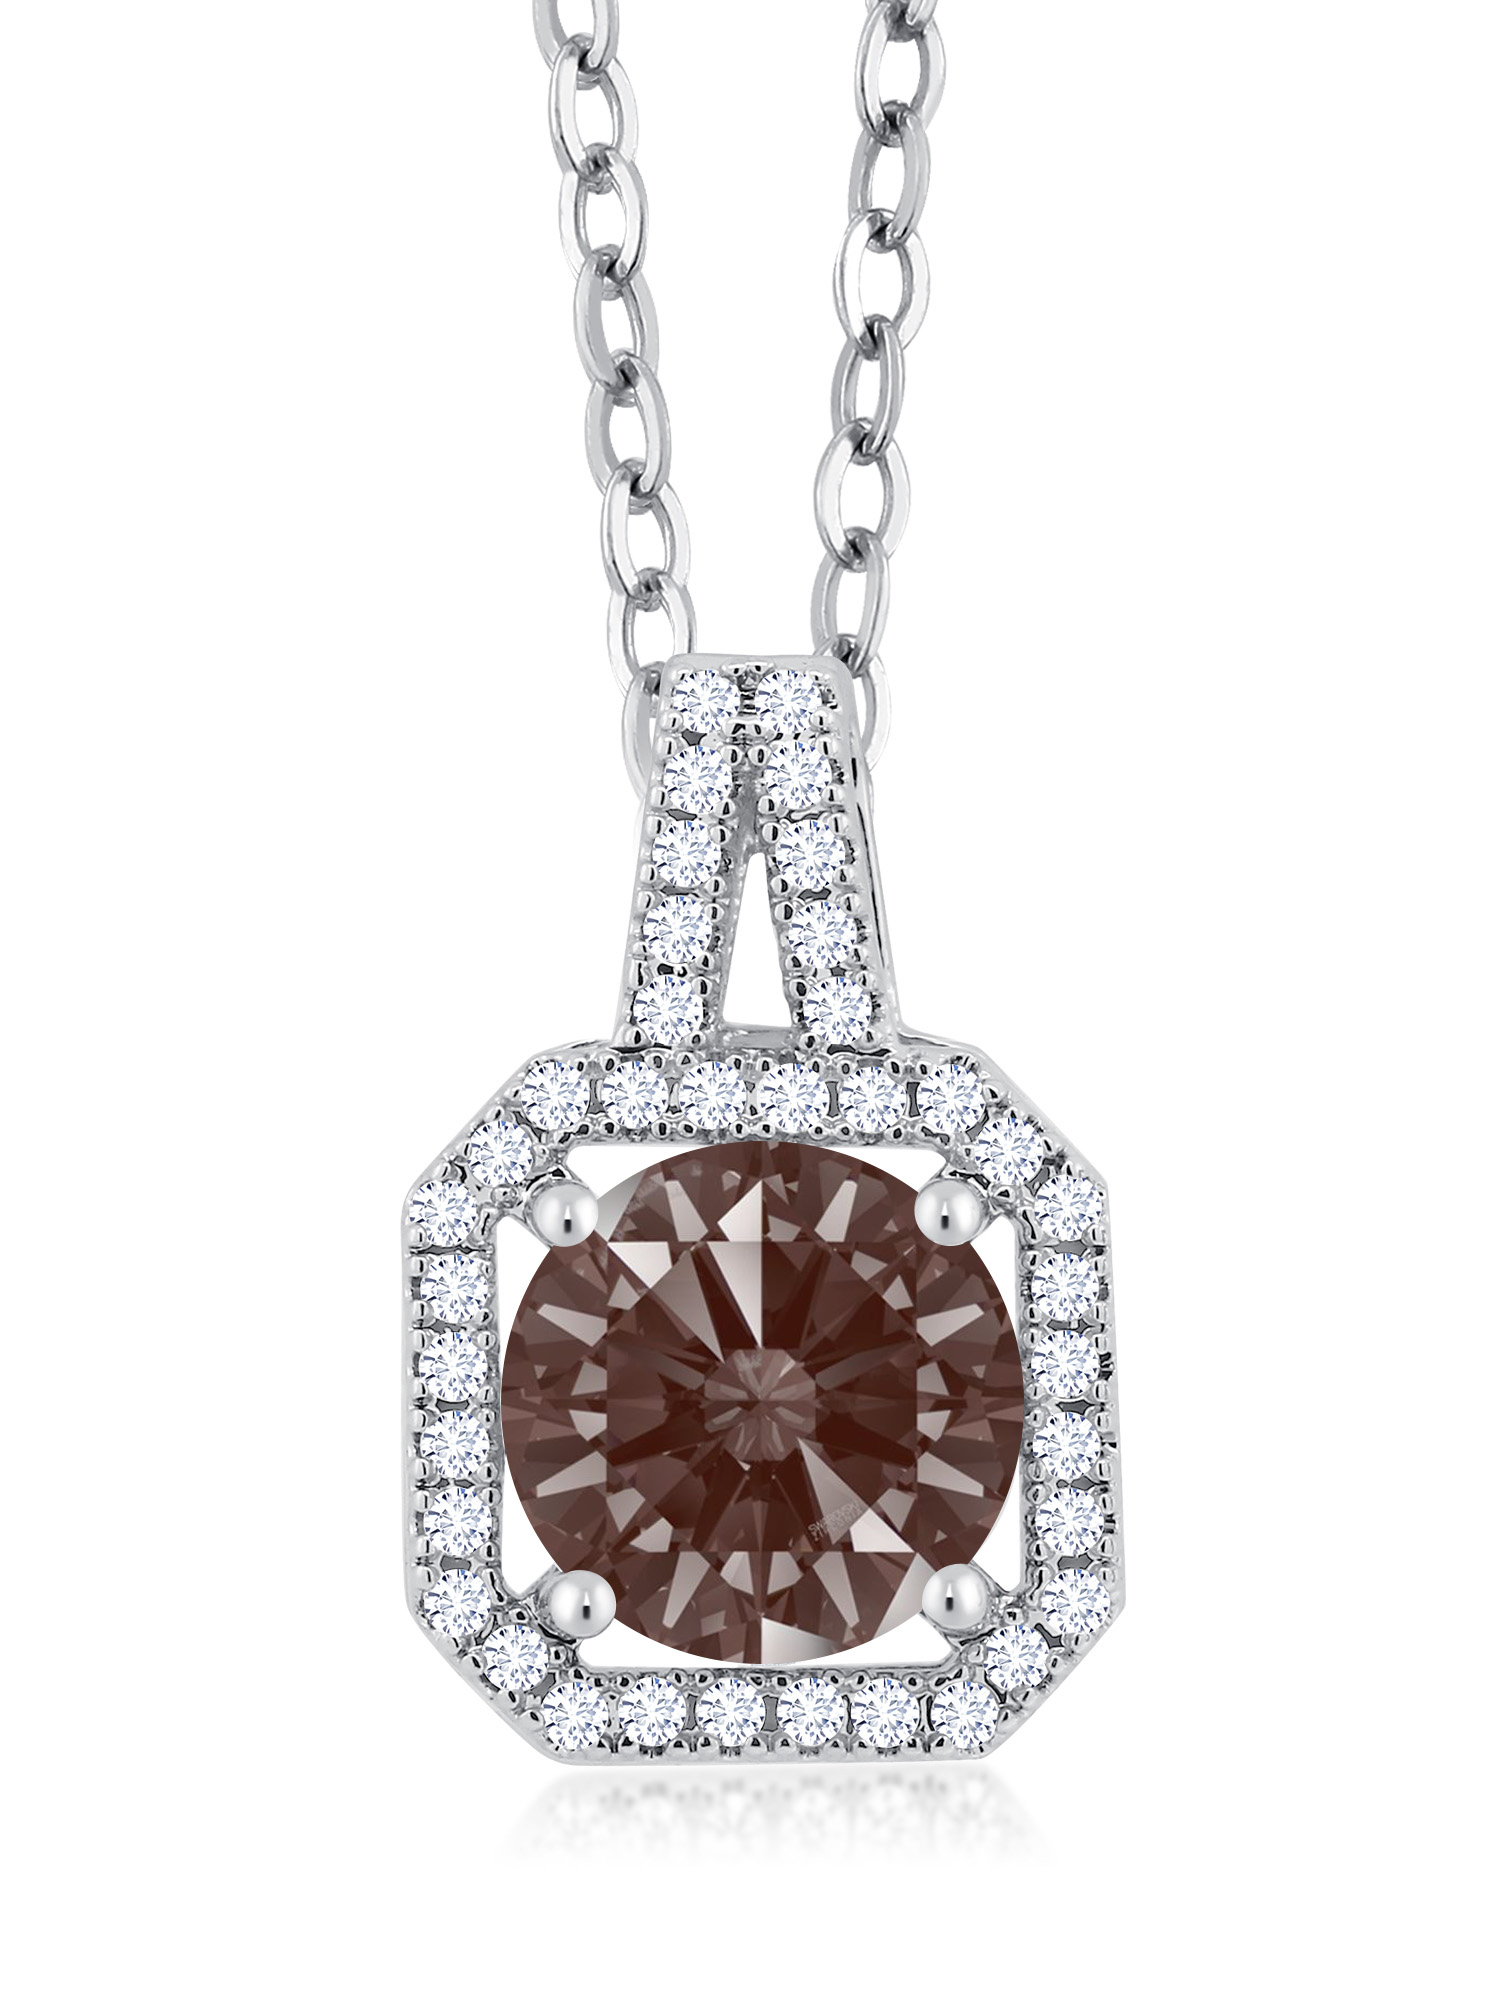 Rhodium Plated Pendant Set with Round Fancy Brown Zirconia from Swarovski